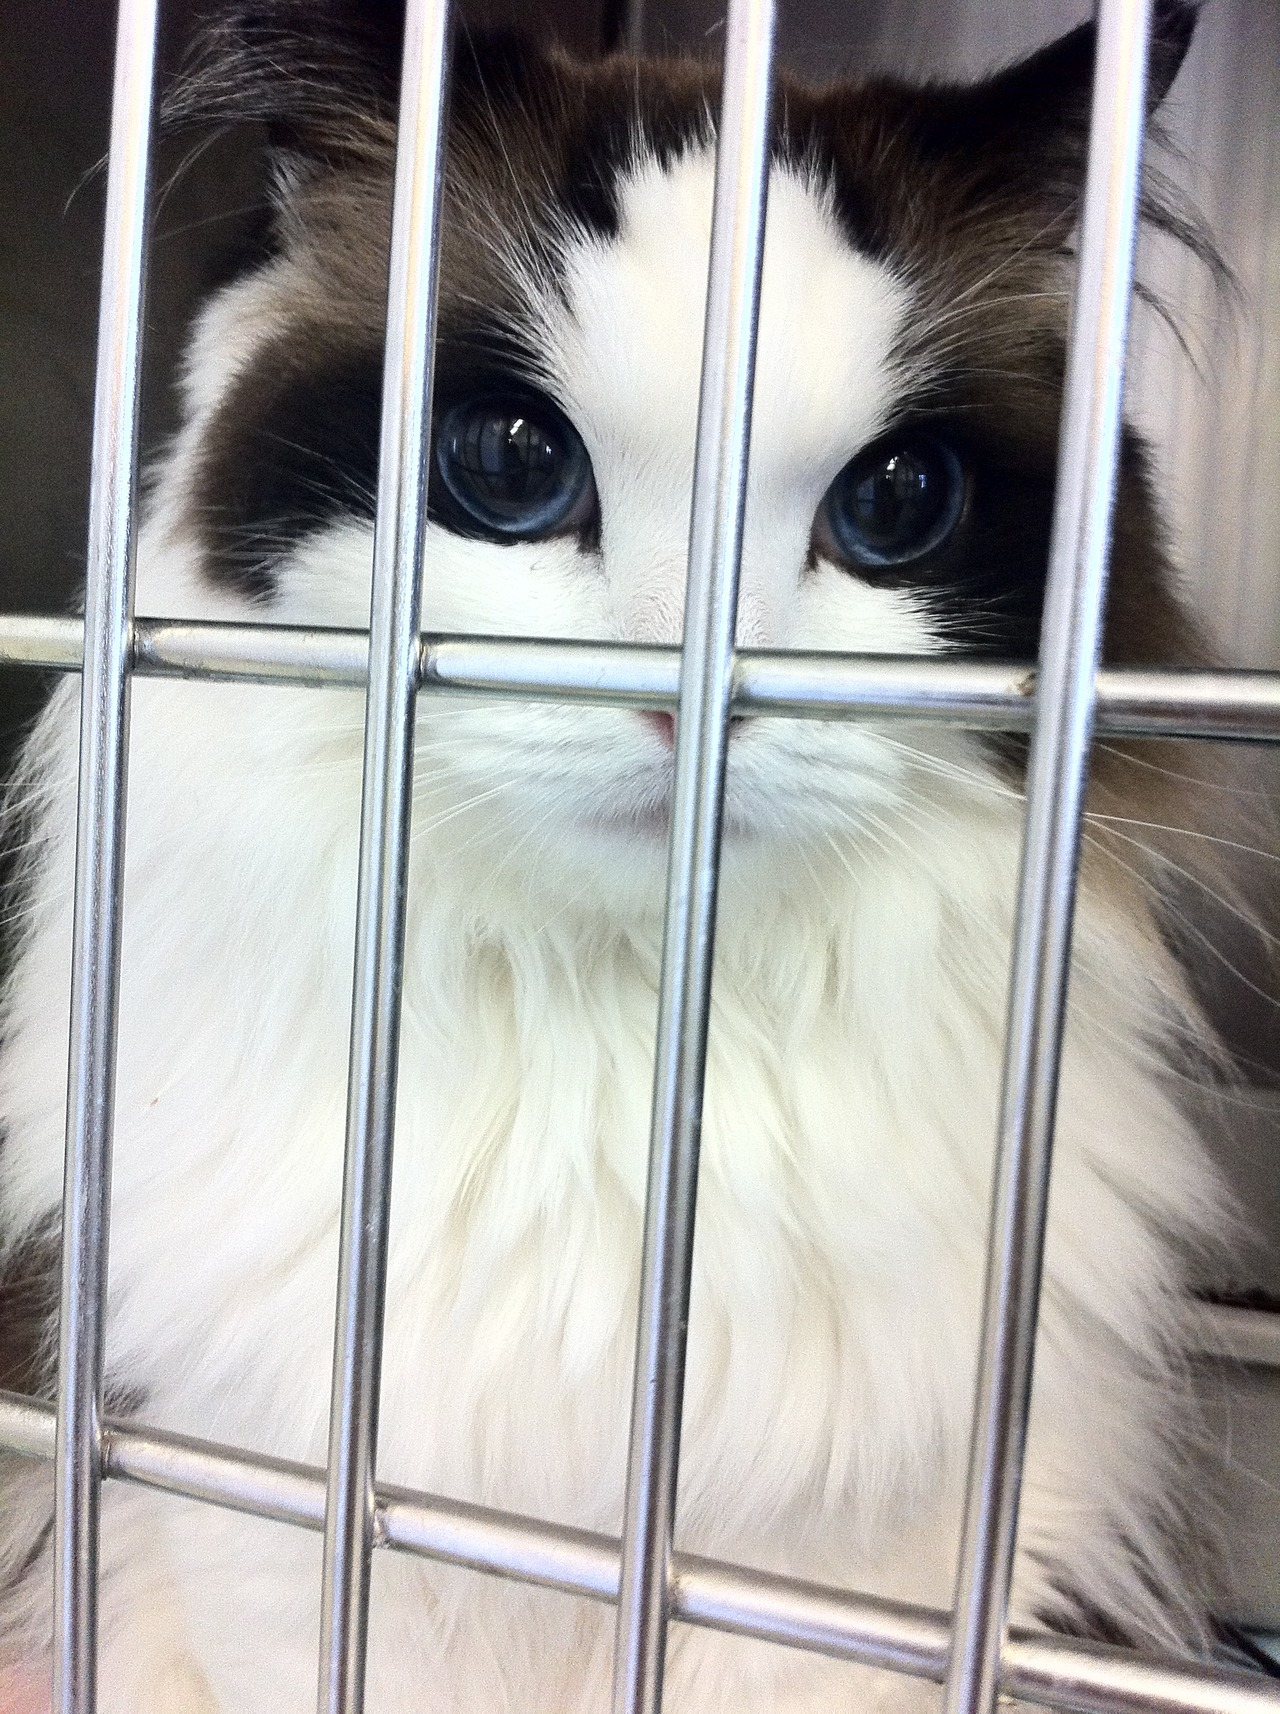 tragedy-13:  my-psychological-tower:  theyoungandjaded:  this cat is prettier than most humans..  [jealous]  So adorable, the bars make me sad though. Poor little thing :((